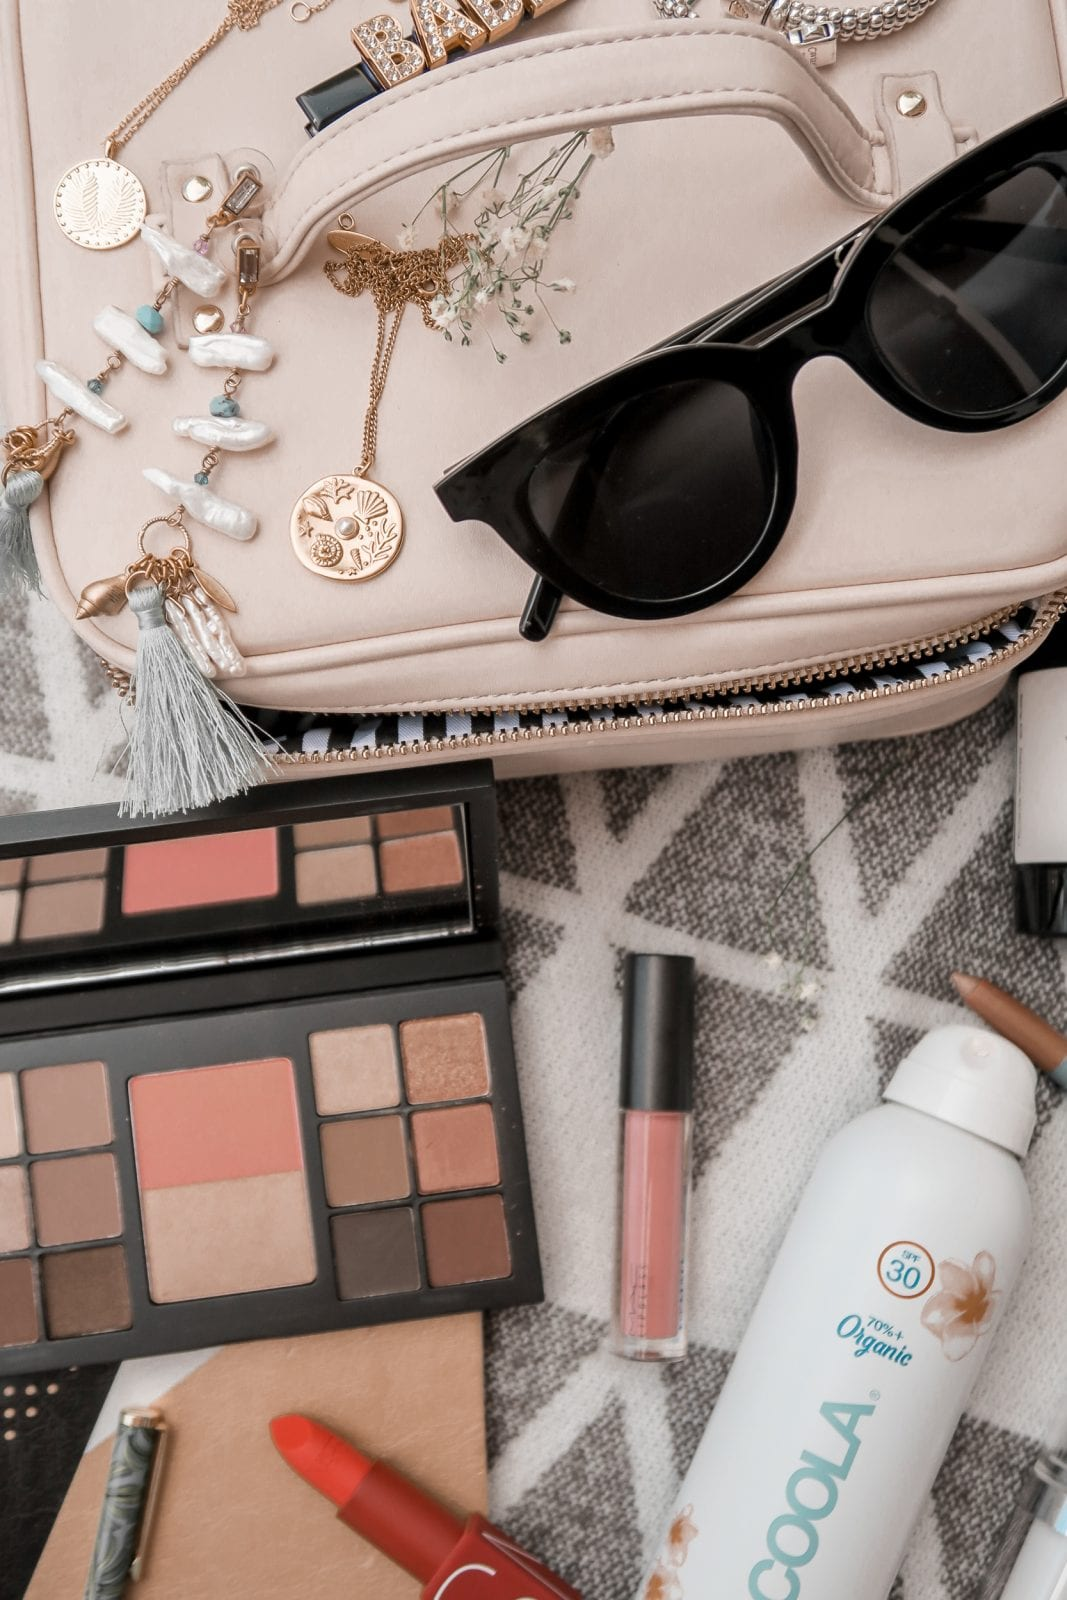 This is a partial flatlay of my monthly favorites in the beauty and fashion space, including products from MAC Cosmetics, NARS and Conges.